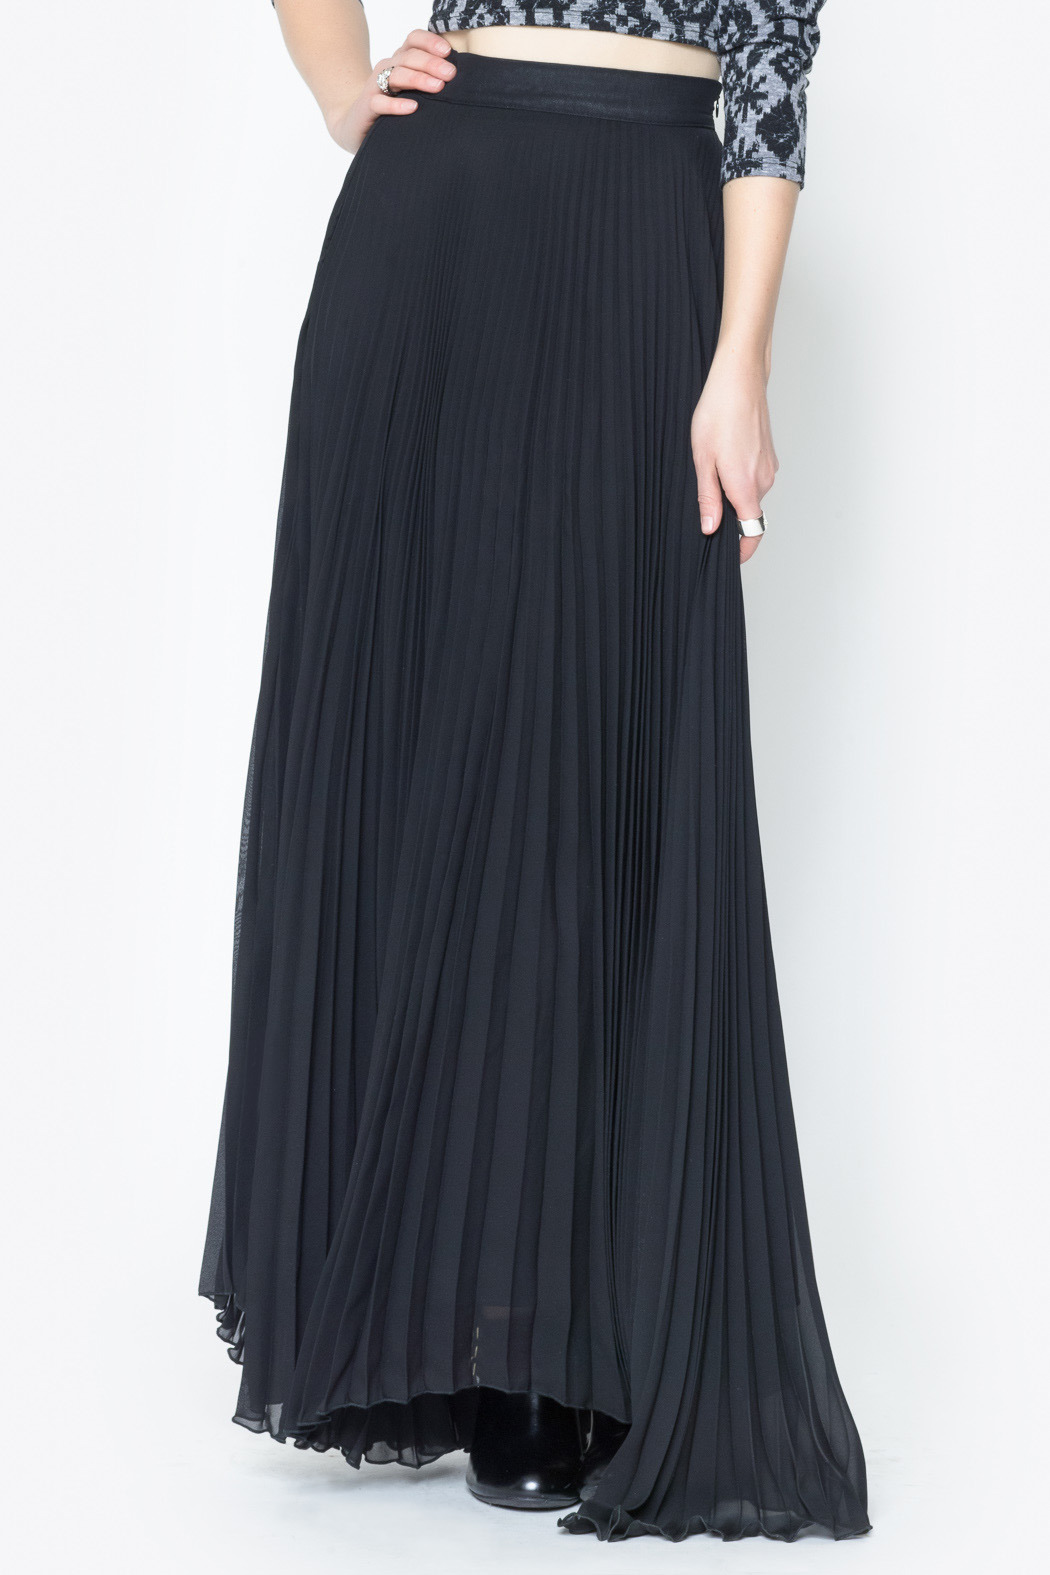 See You Monday Accordian Pleat Maxi Skirt - Front Cropped Image